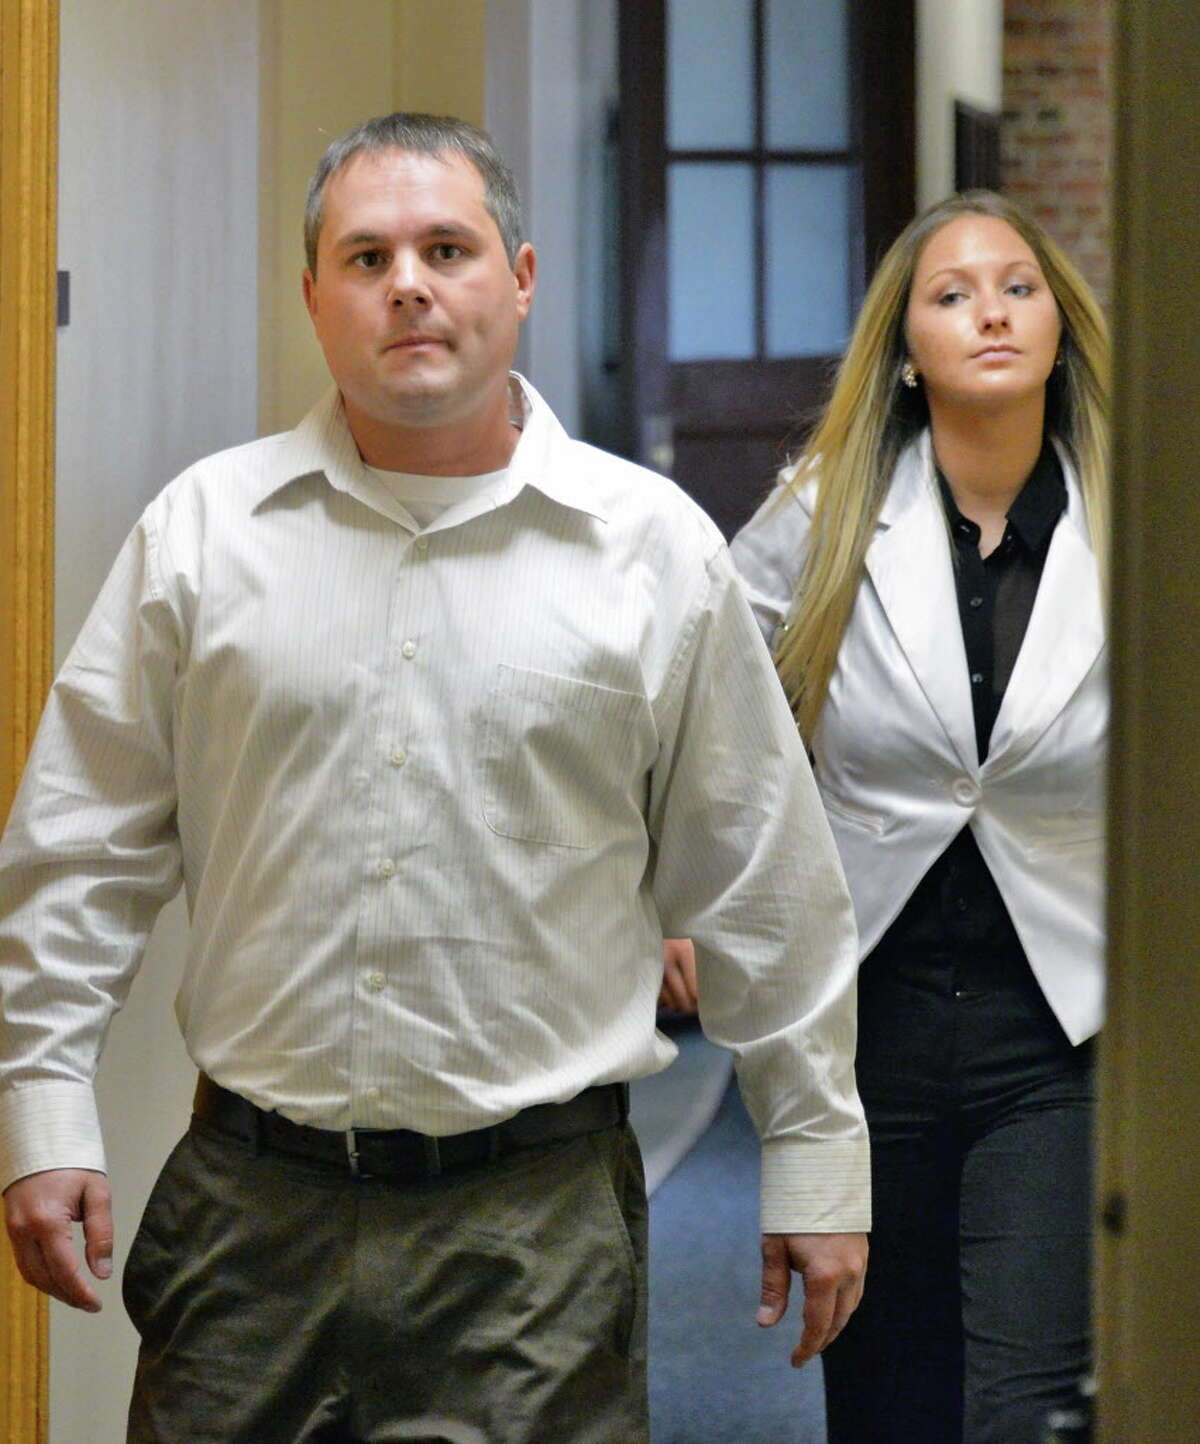 Joshua Malatino, left, and Sno Kone Joe owner Amanda Scott, in Fulton County Supreme Court in Johnstown, NY Tuesday May 14, 2013. (John Carl D'Annibale / Times Union archive)